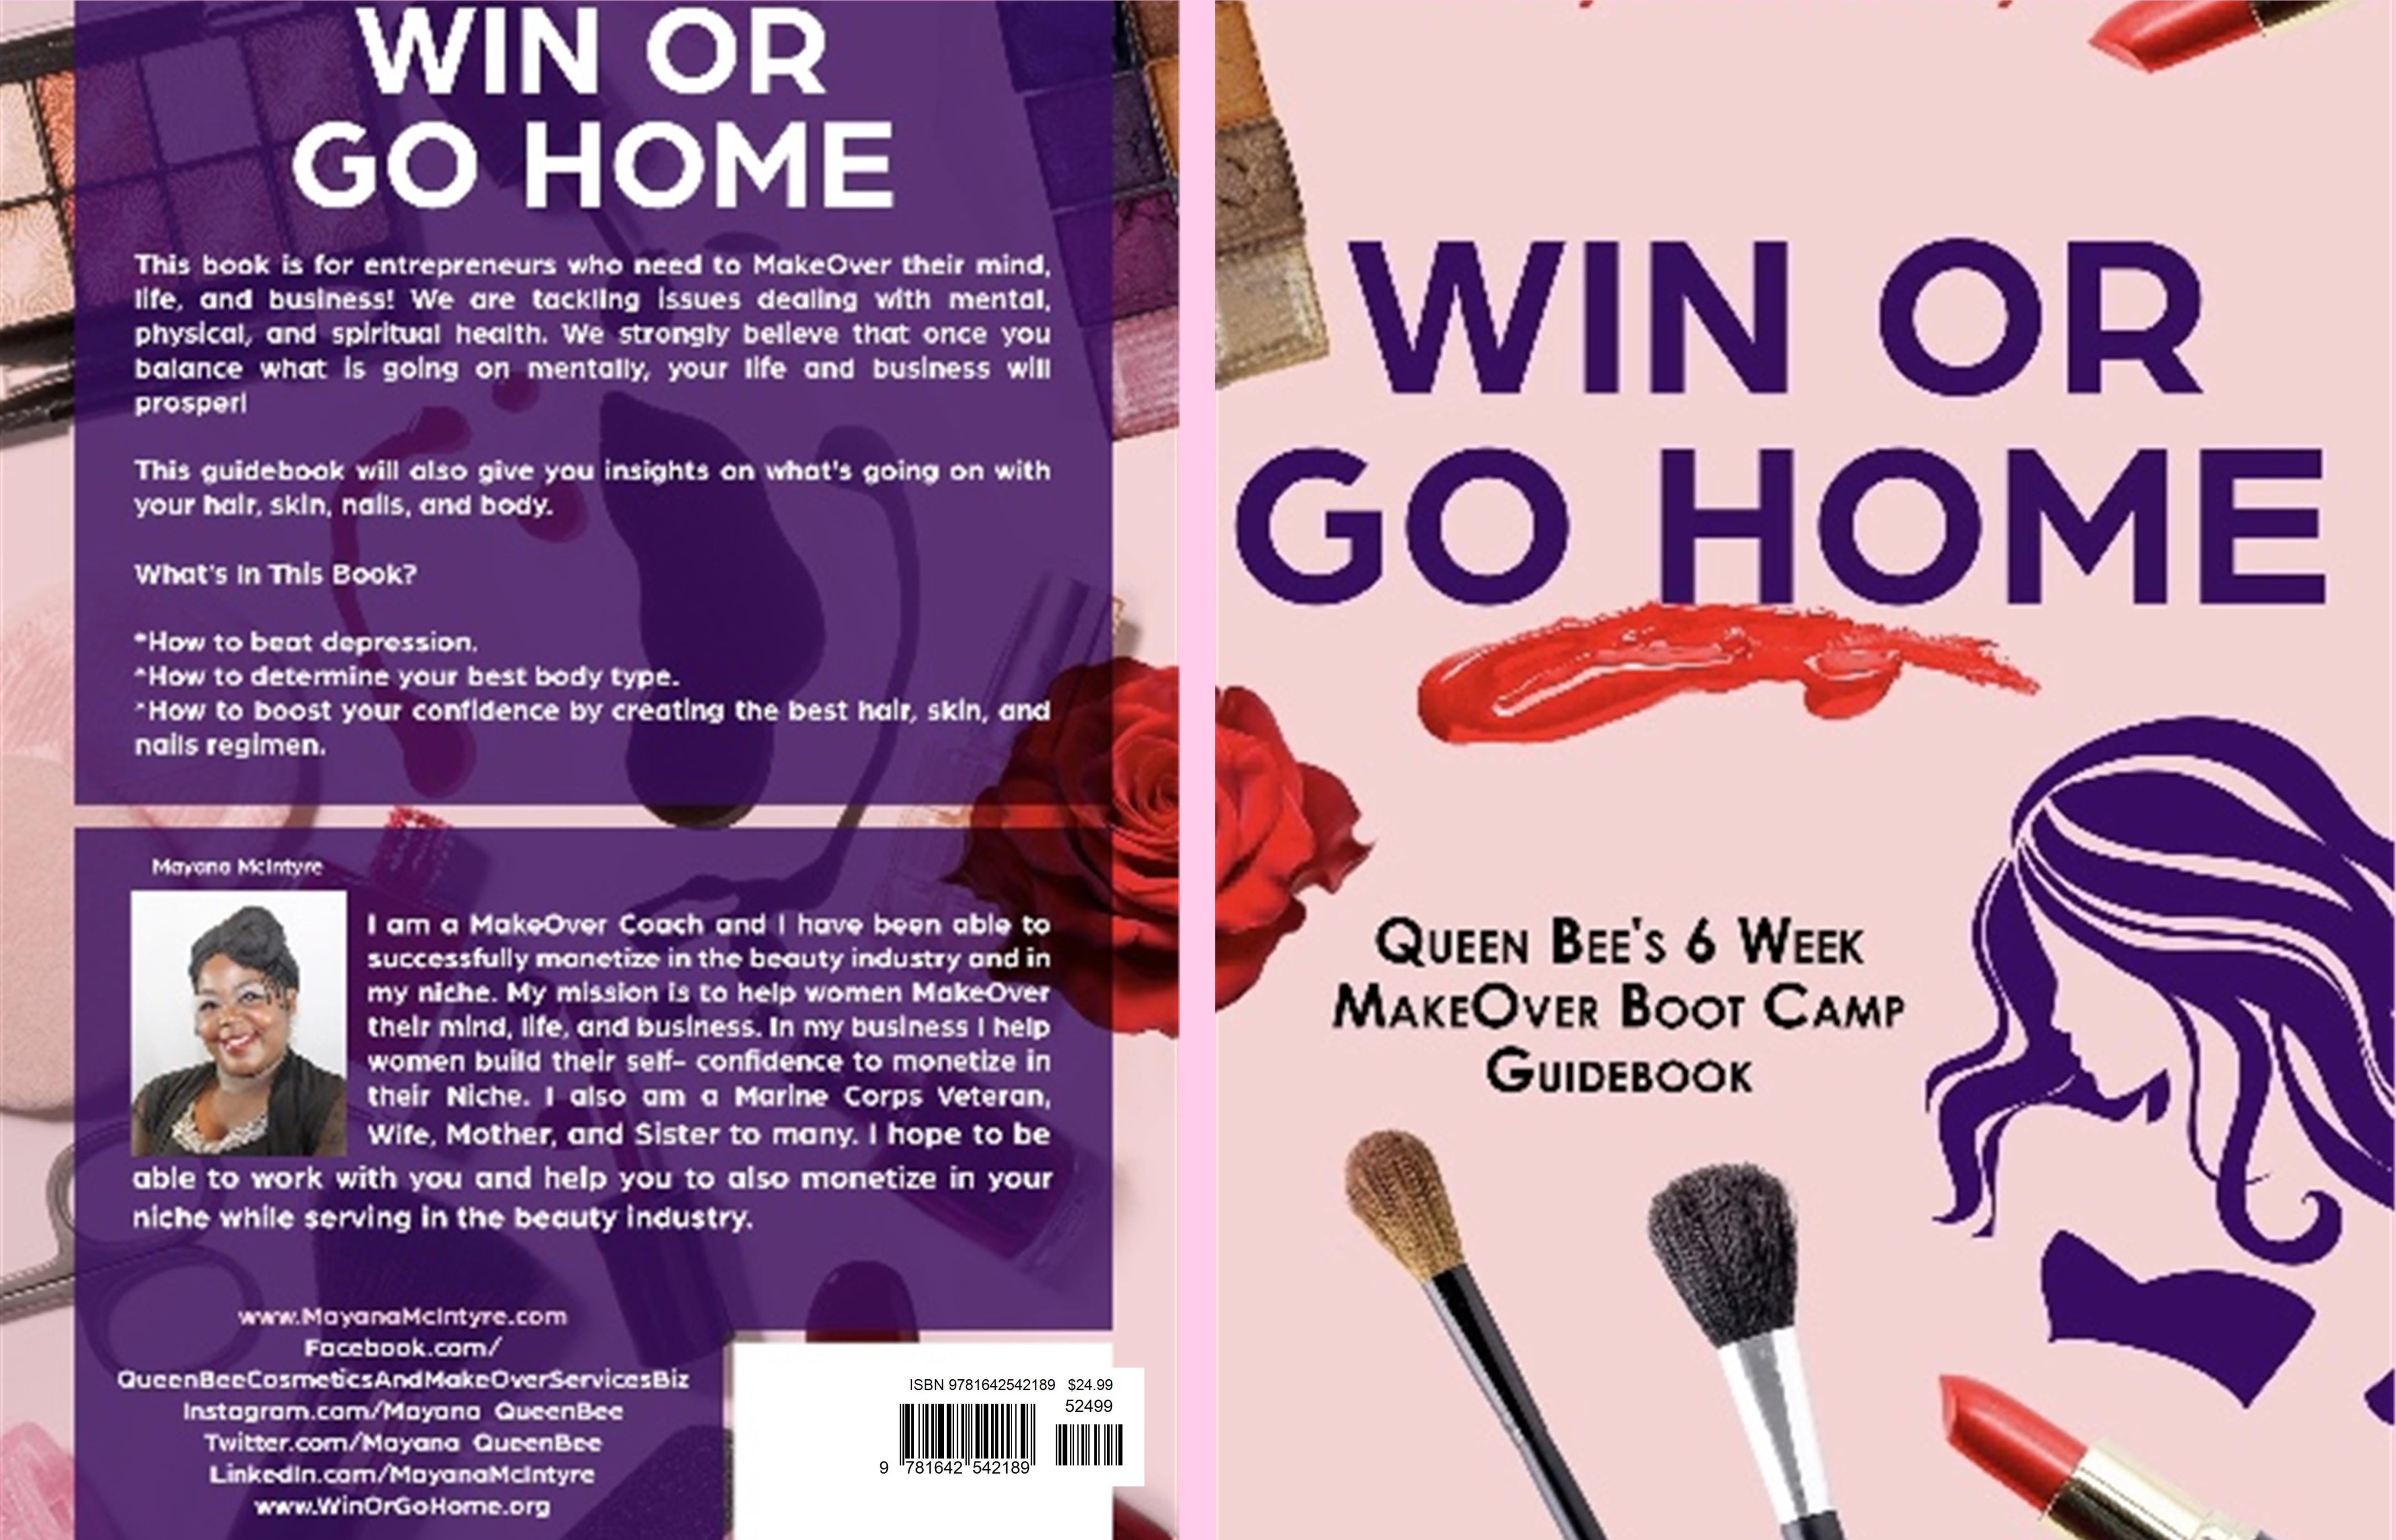 Win Or Go Home: Queen Bee's 6 Week MakeOver Boot Camp Guidebook cover image